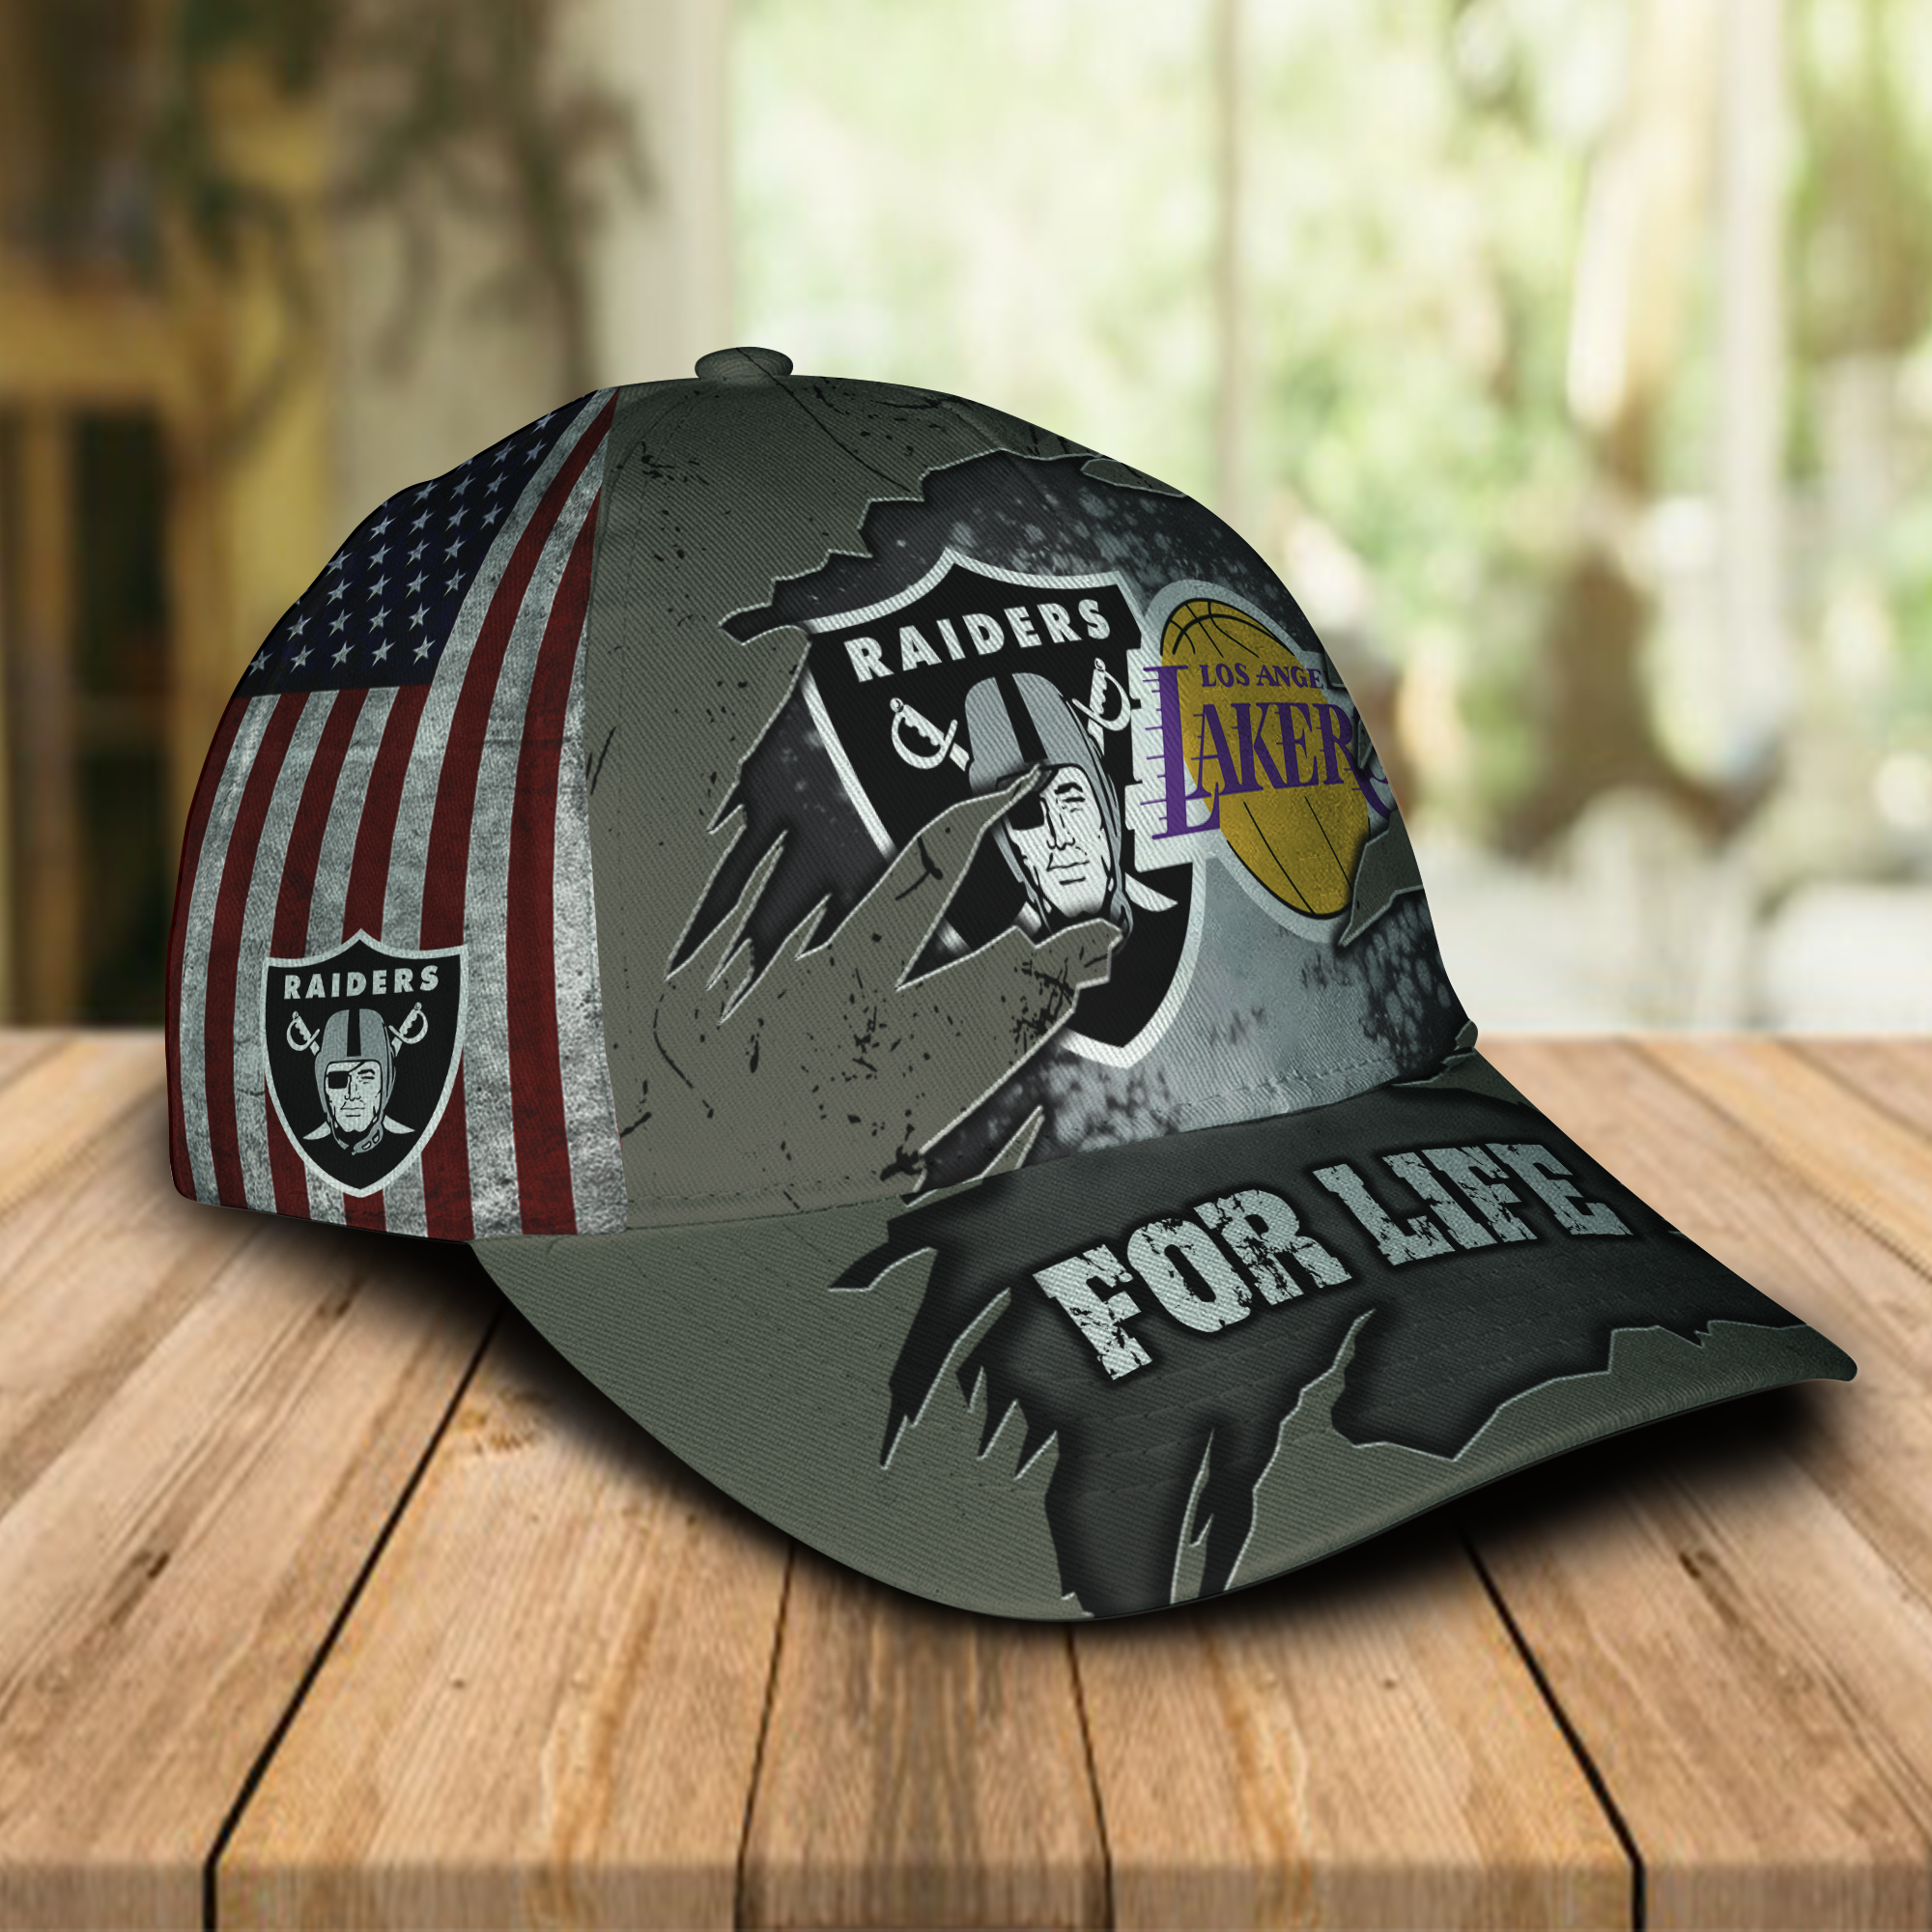 Las Vegas Raiders And Los Angeles Lakers For Life